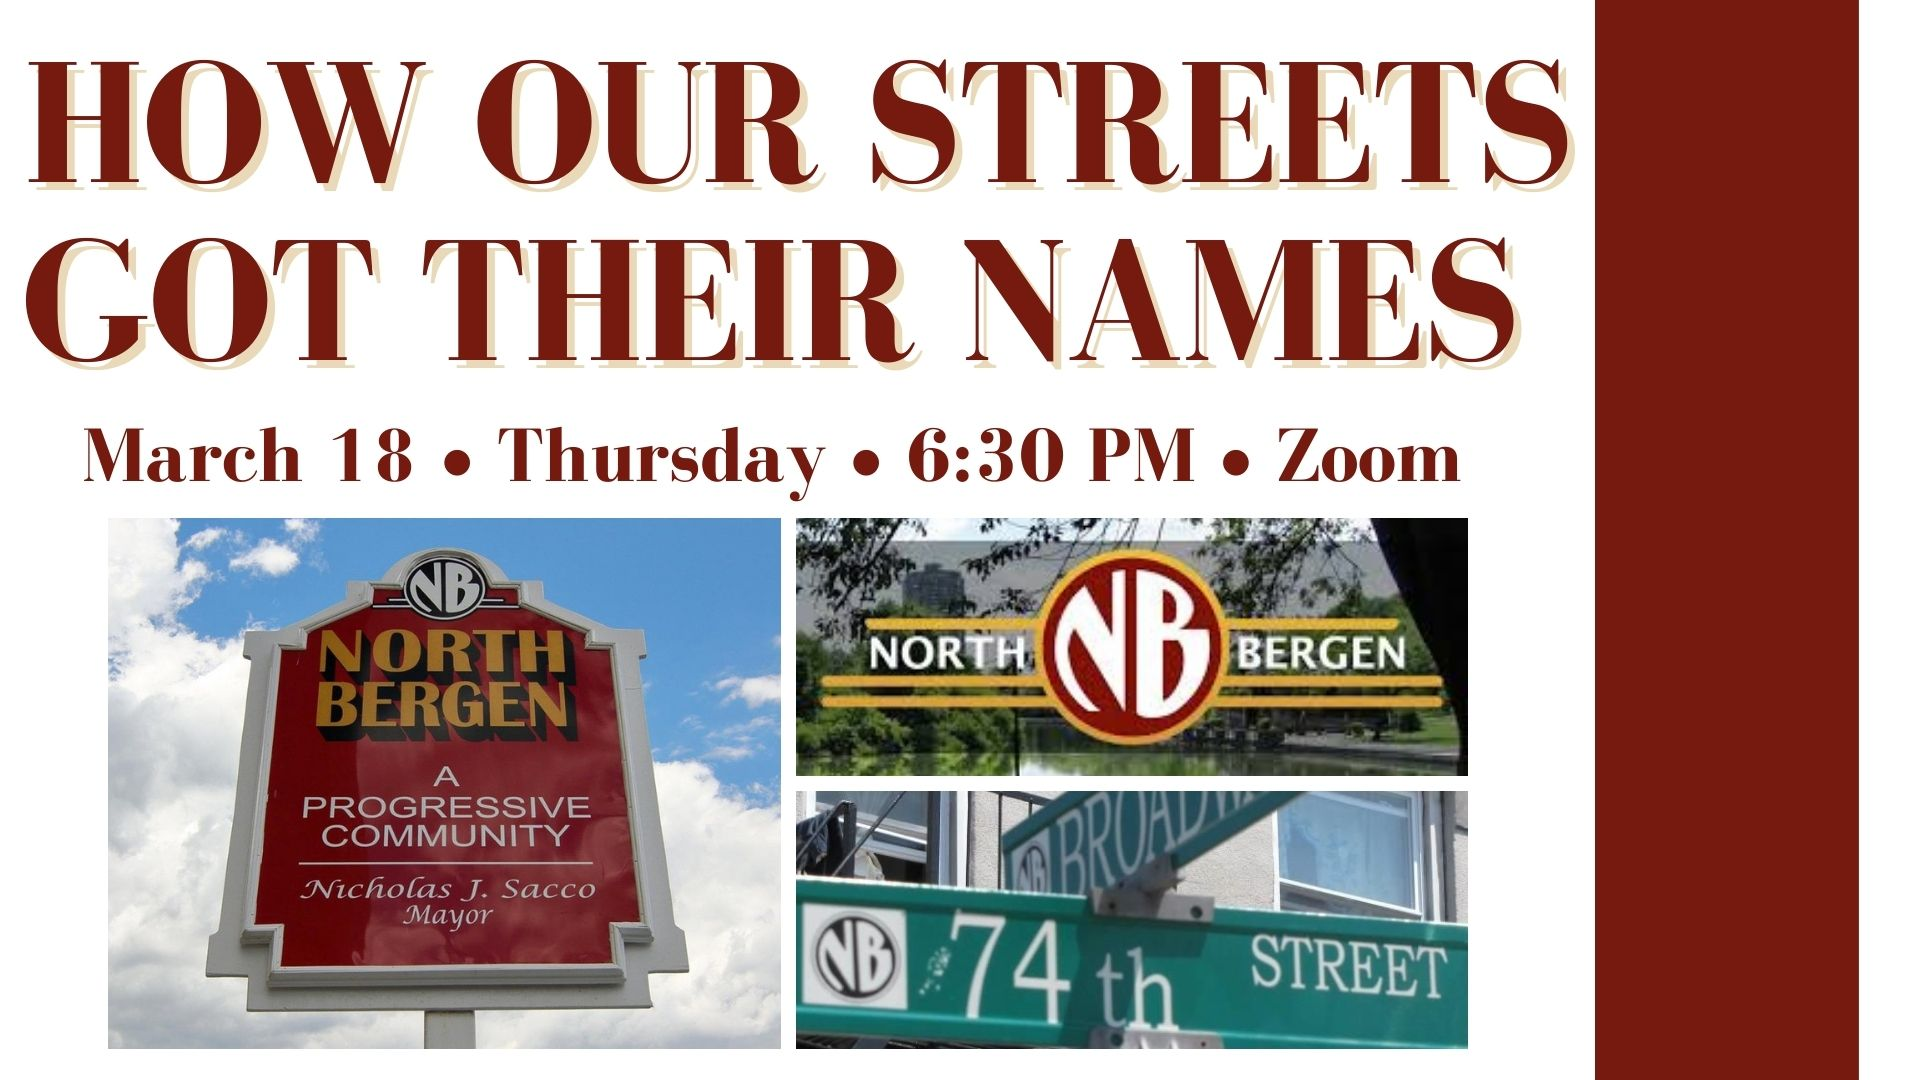 How our streets got their names